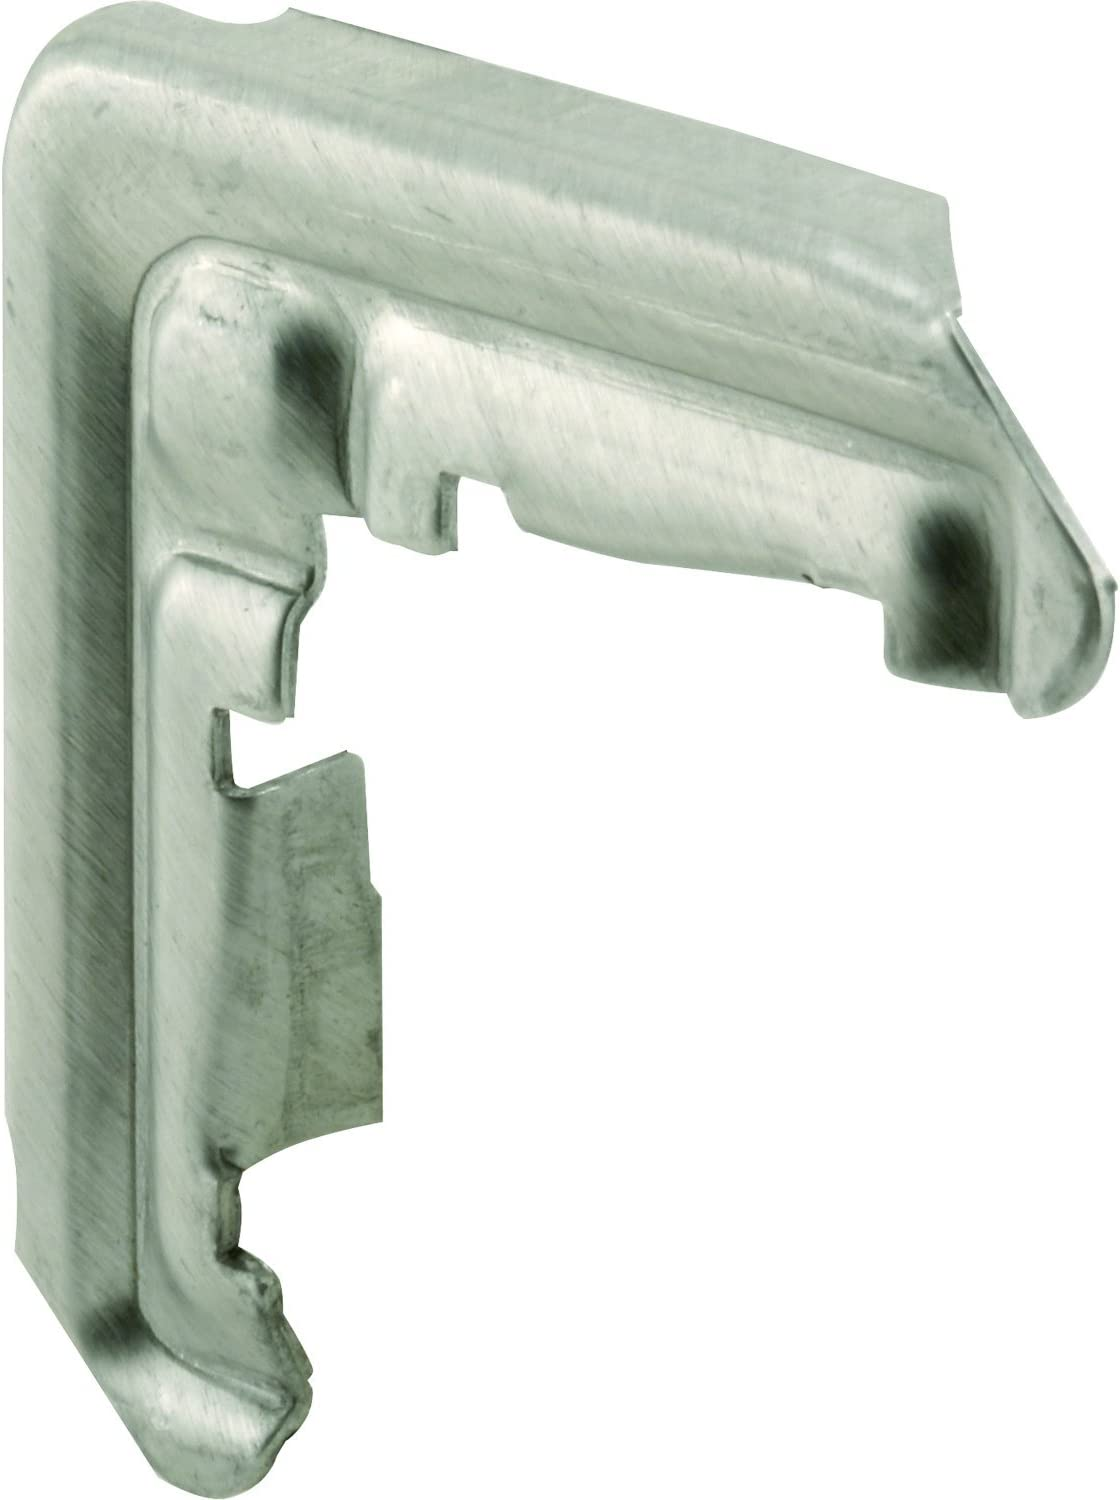 Prime-Line MP5592-50 Screen Frame Corners, 7/16 in, Stamped Aluminum Construction, Mill Finish, Pack of 50, 50 Piece